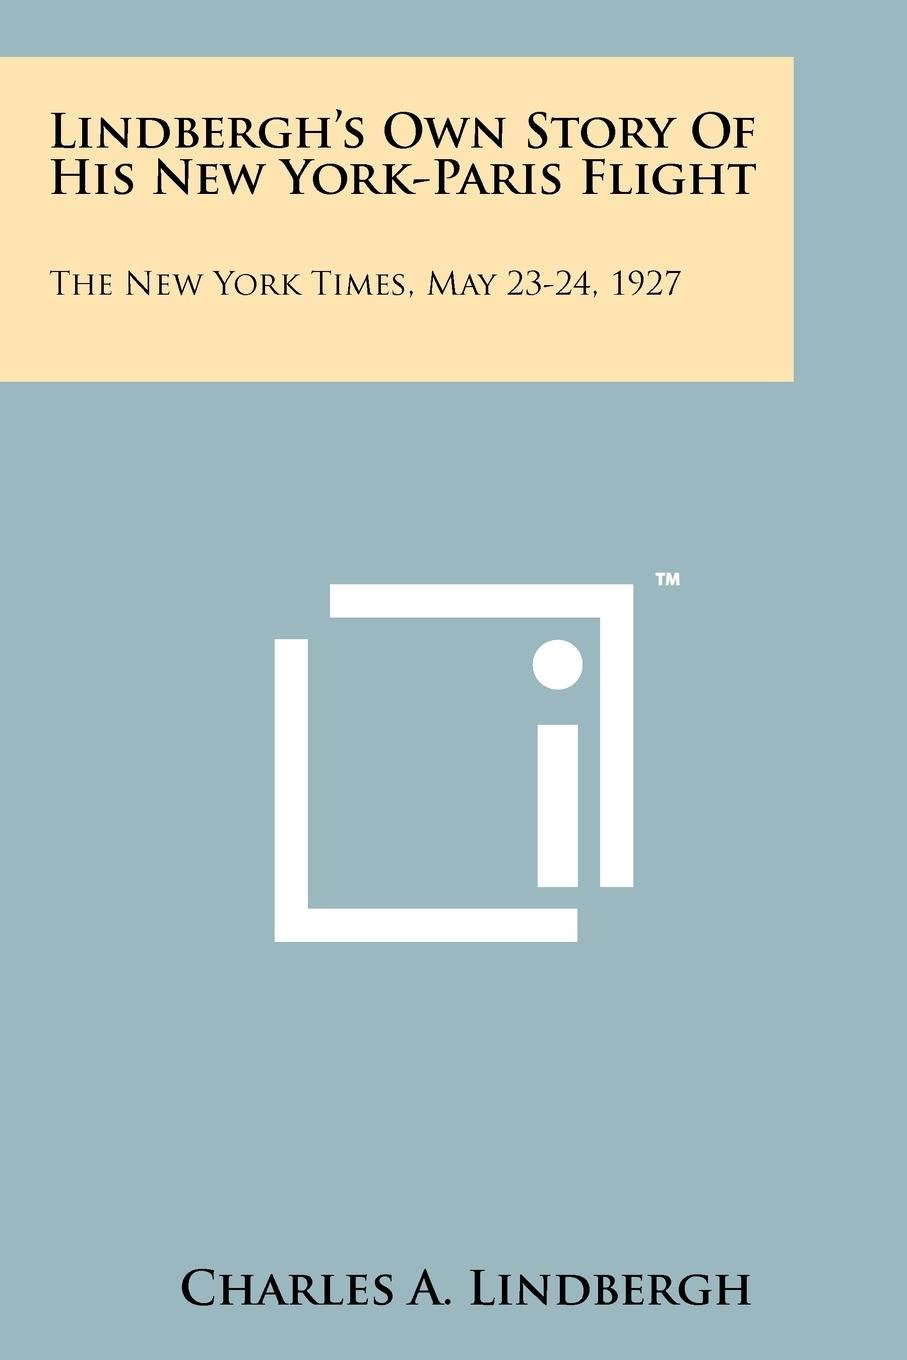 Download Lindbergh's Own Story Of His New York-Paris Flight: The New York Times, May 23-24, 1927 pdf epub